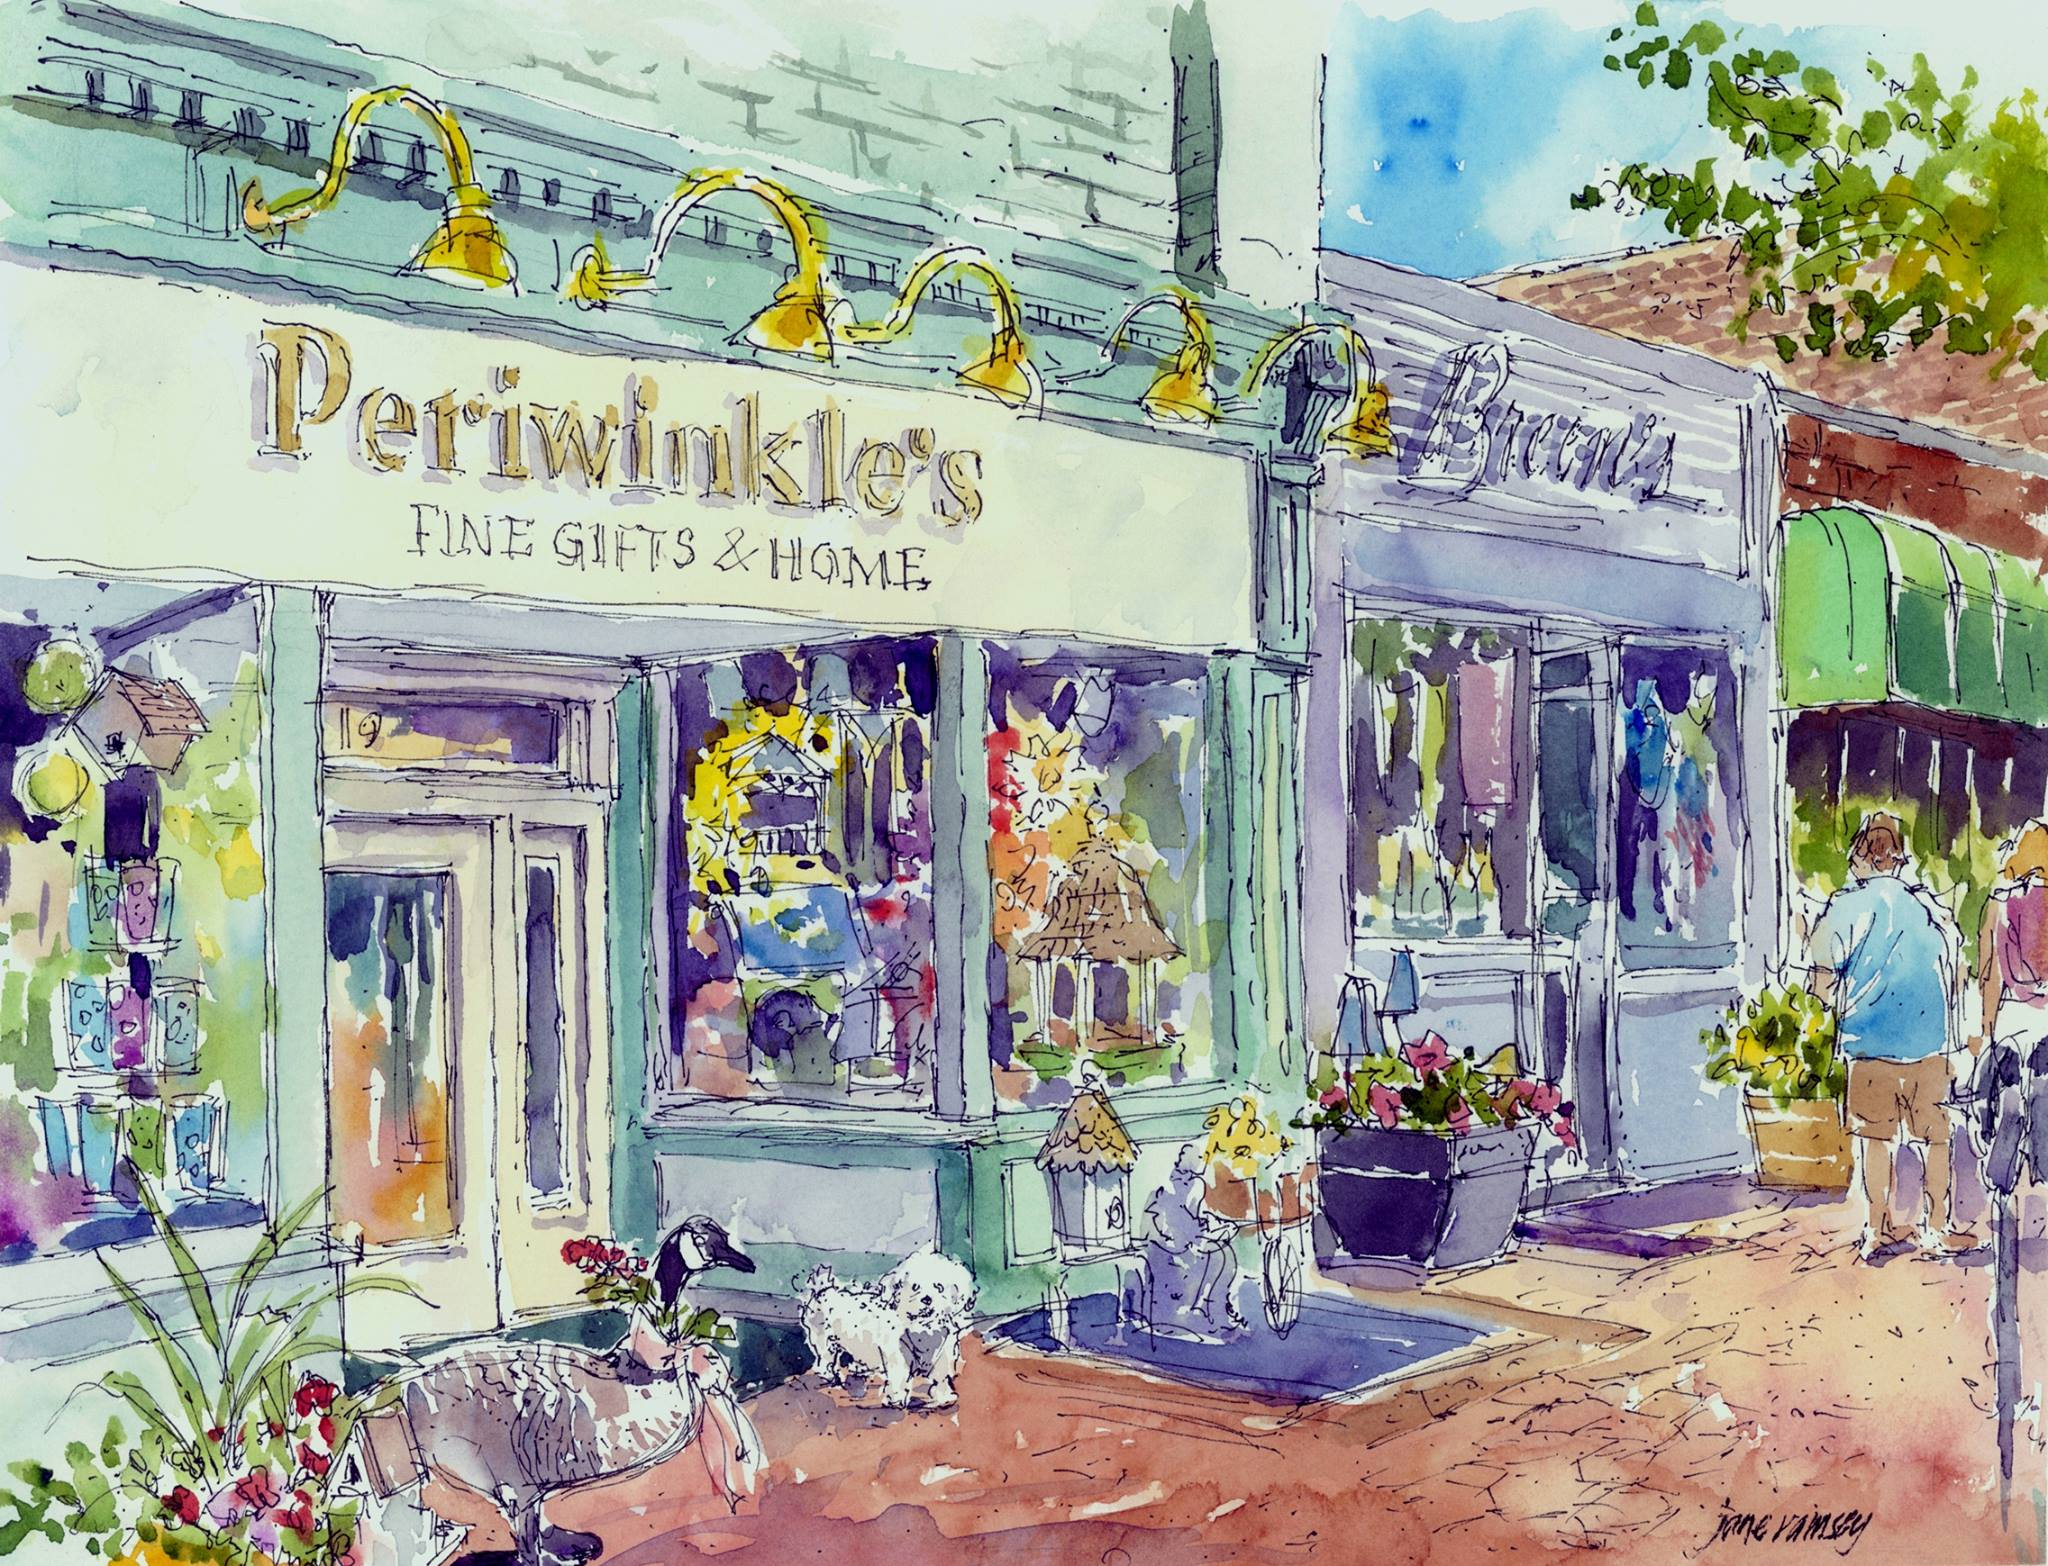 Periwinkle's fine gifts   19 Union Ave N Cranford, New Jersey 07016 (908) 276-1300